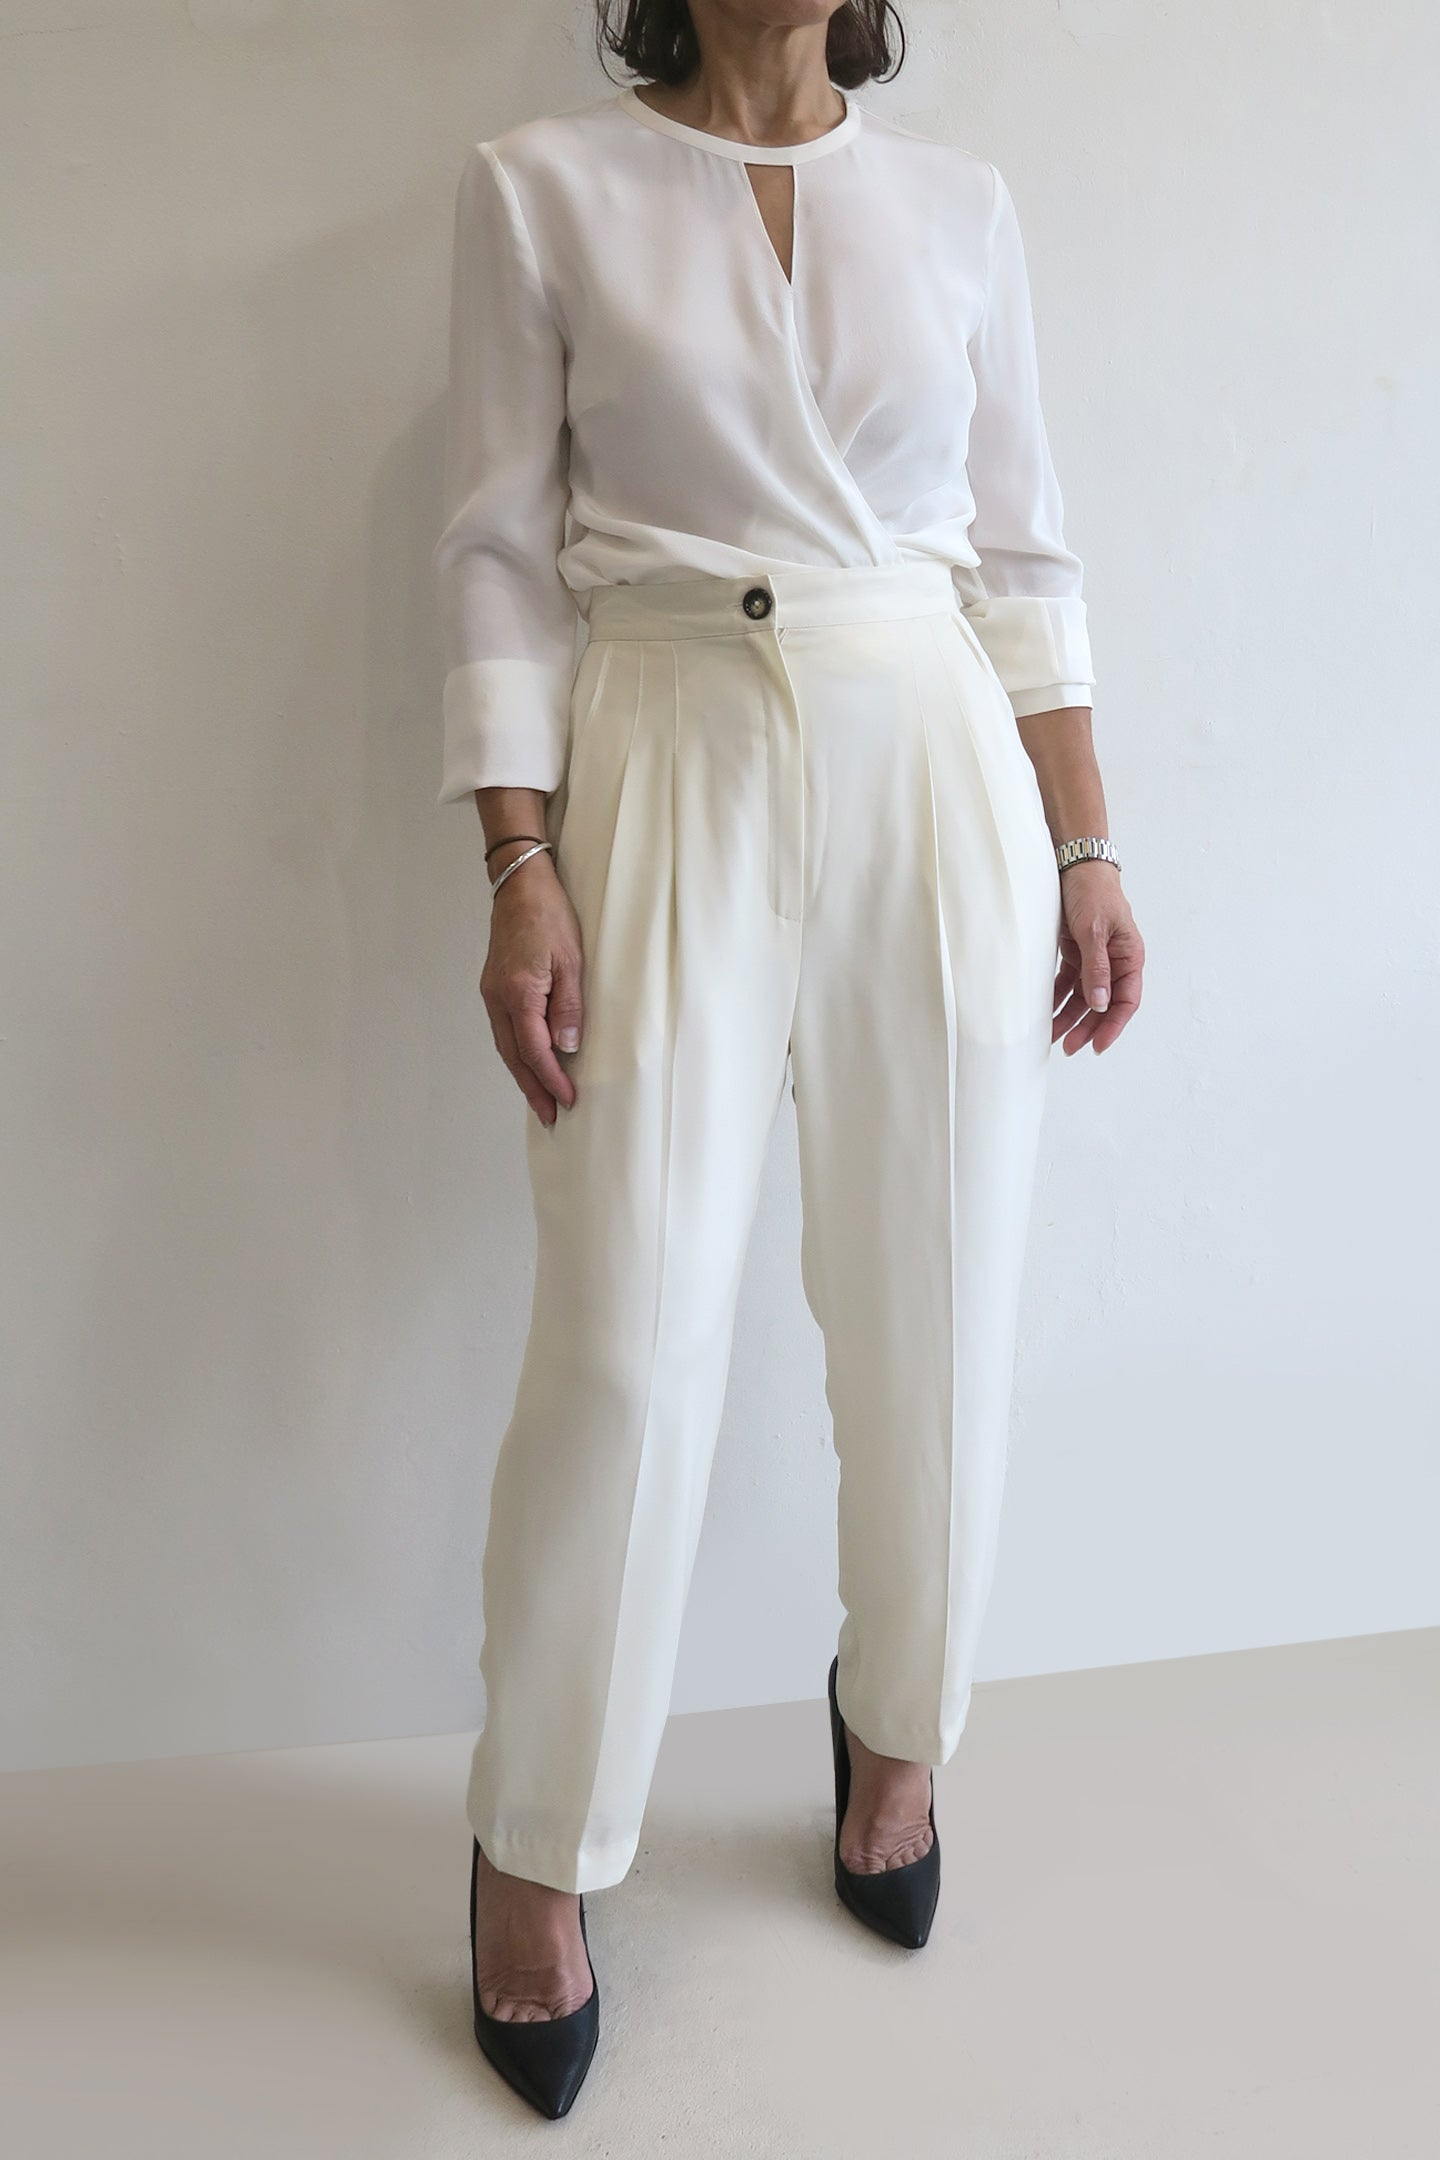 1990s Country Road High Waist Pant